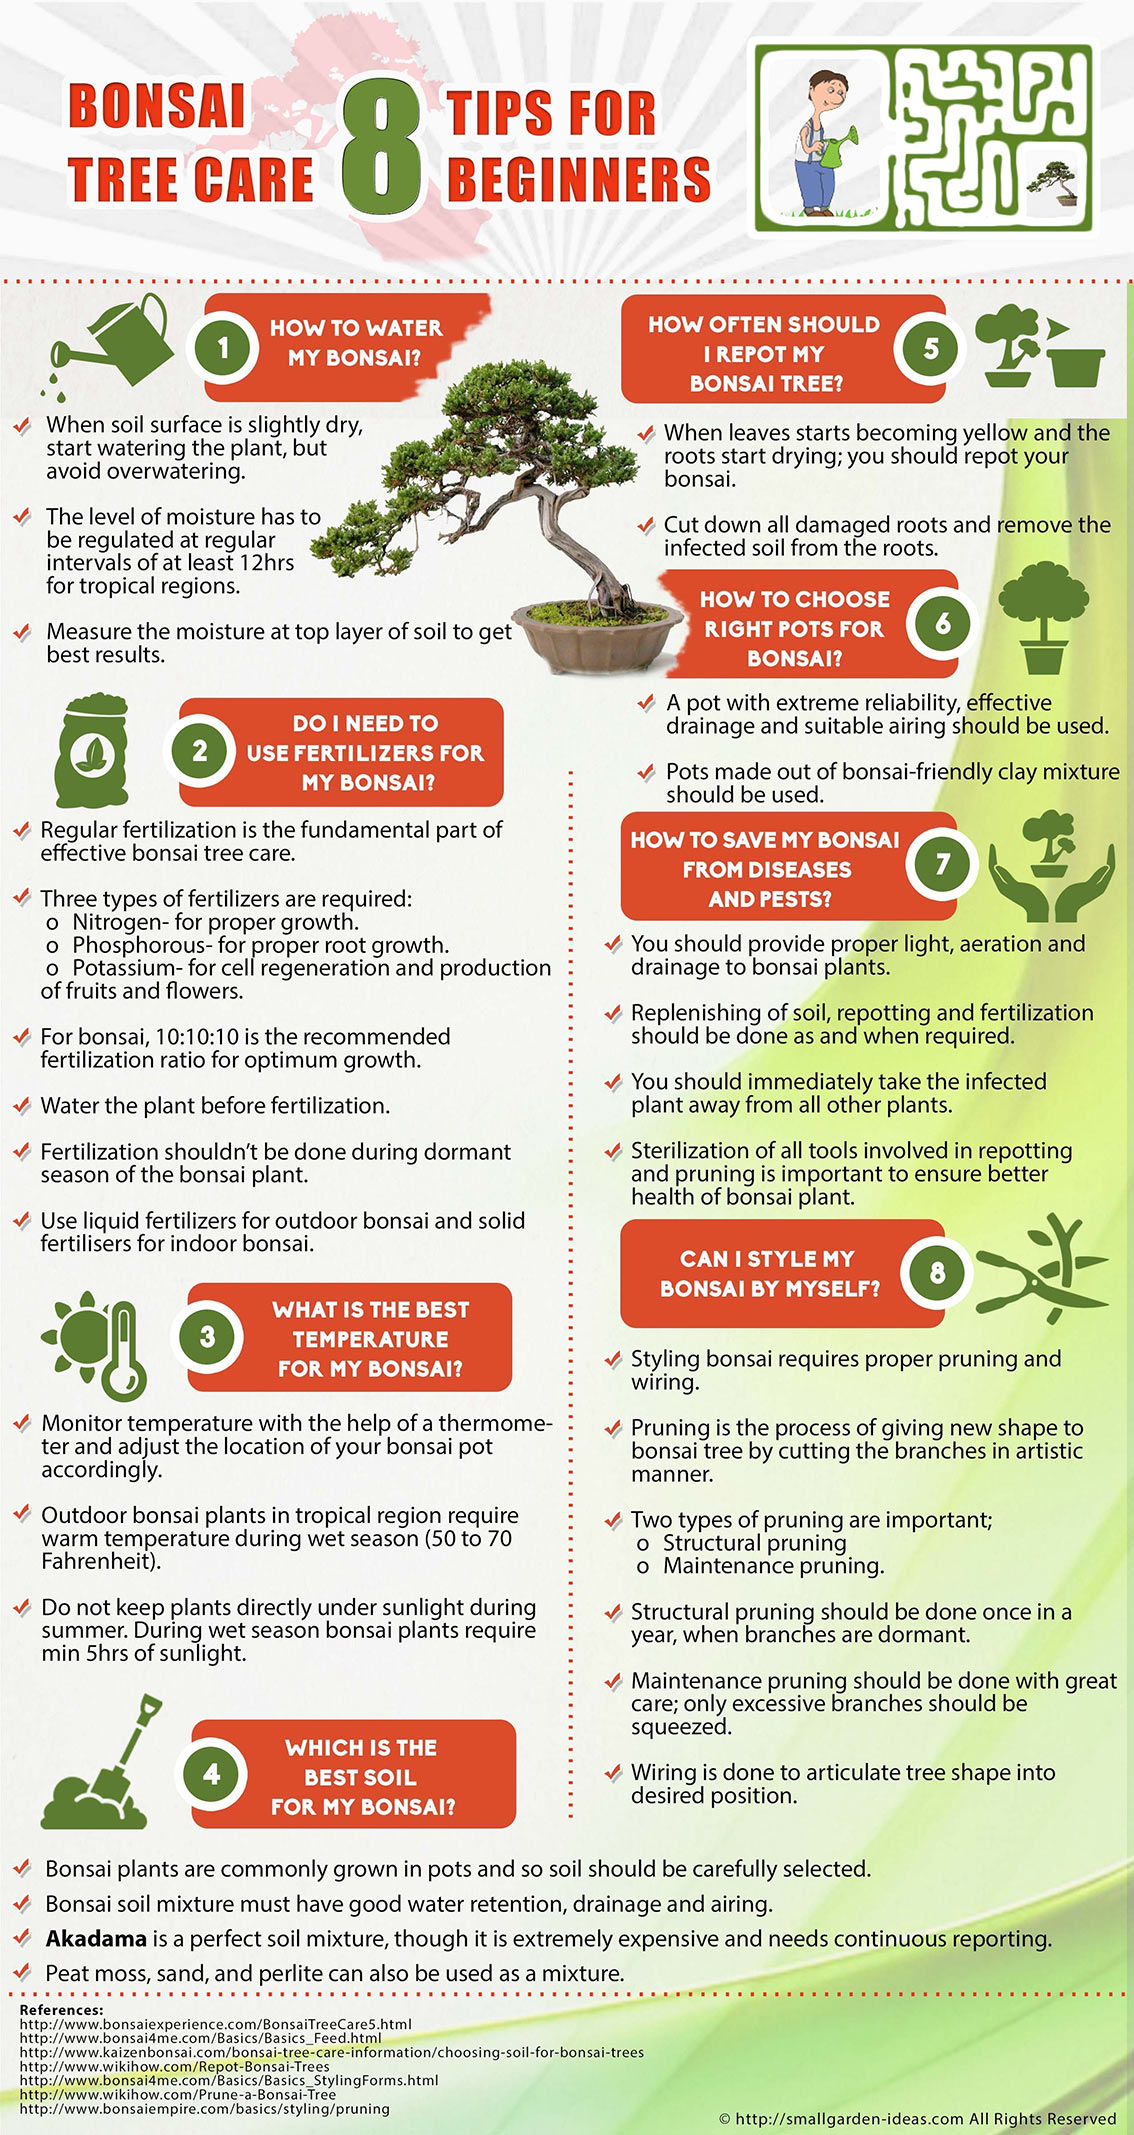 Bonsai Tree Care Tips for Beginners Infographic